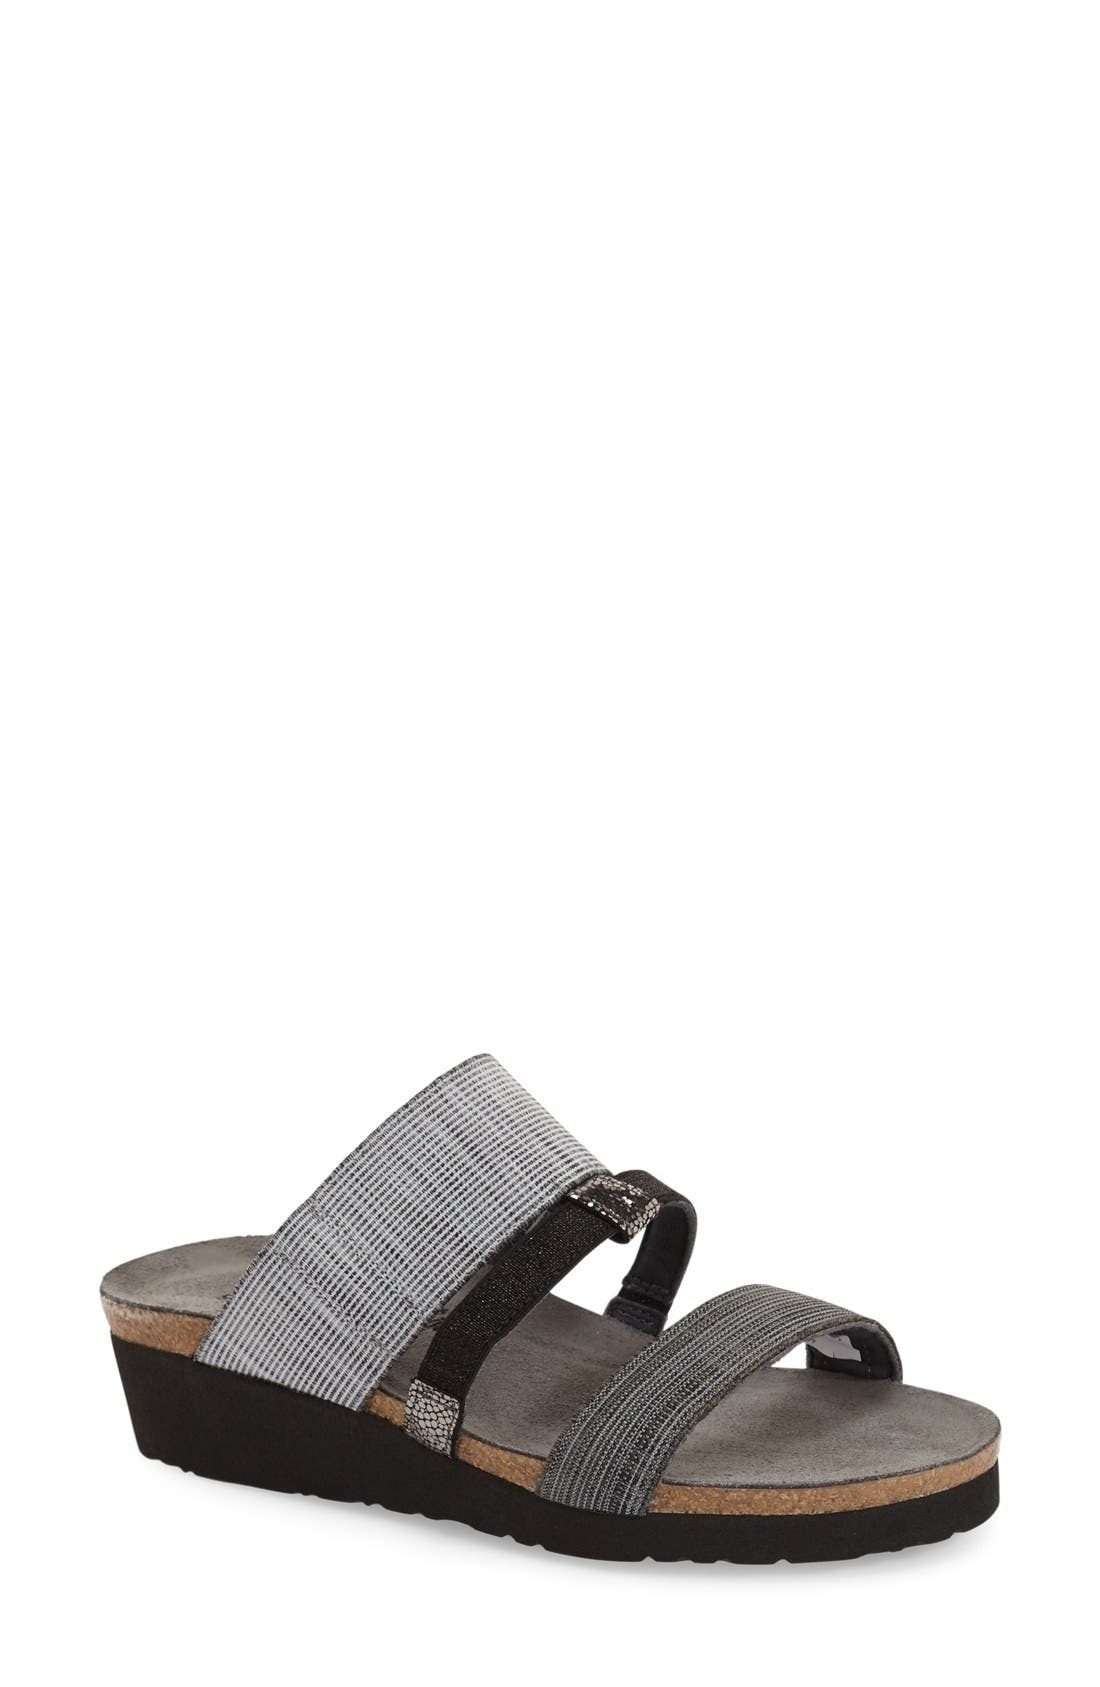 'Brenda' Slip-On Sandal,                             Main thumbnail 1, color,                             GREY/ BLACK LEATHER FABRIC